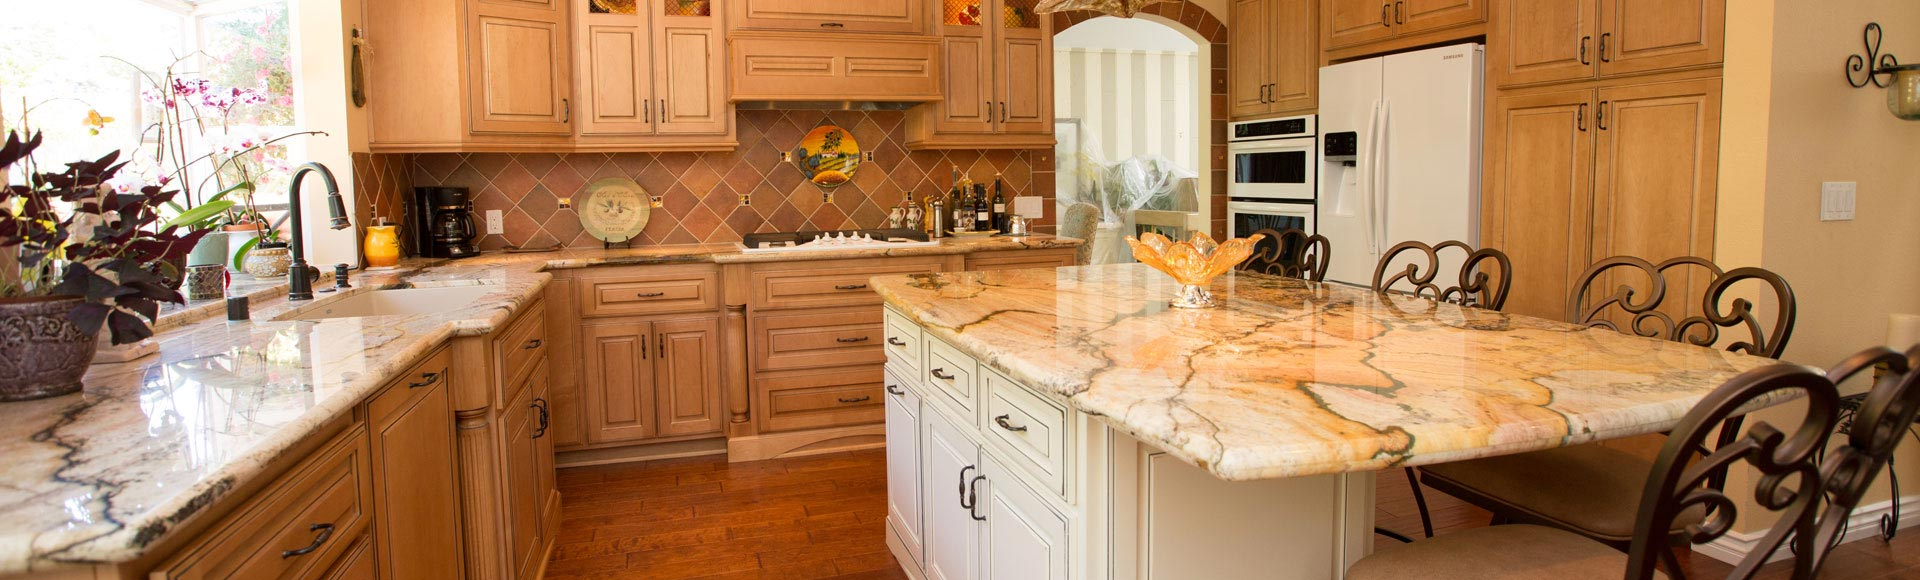 Standard_Faceframe_Traditional_Custom_Kitchen_Cabinets_GJW_AZ6A9607